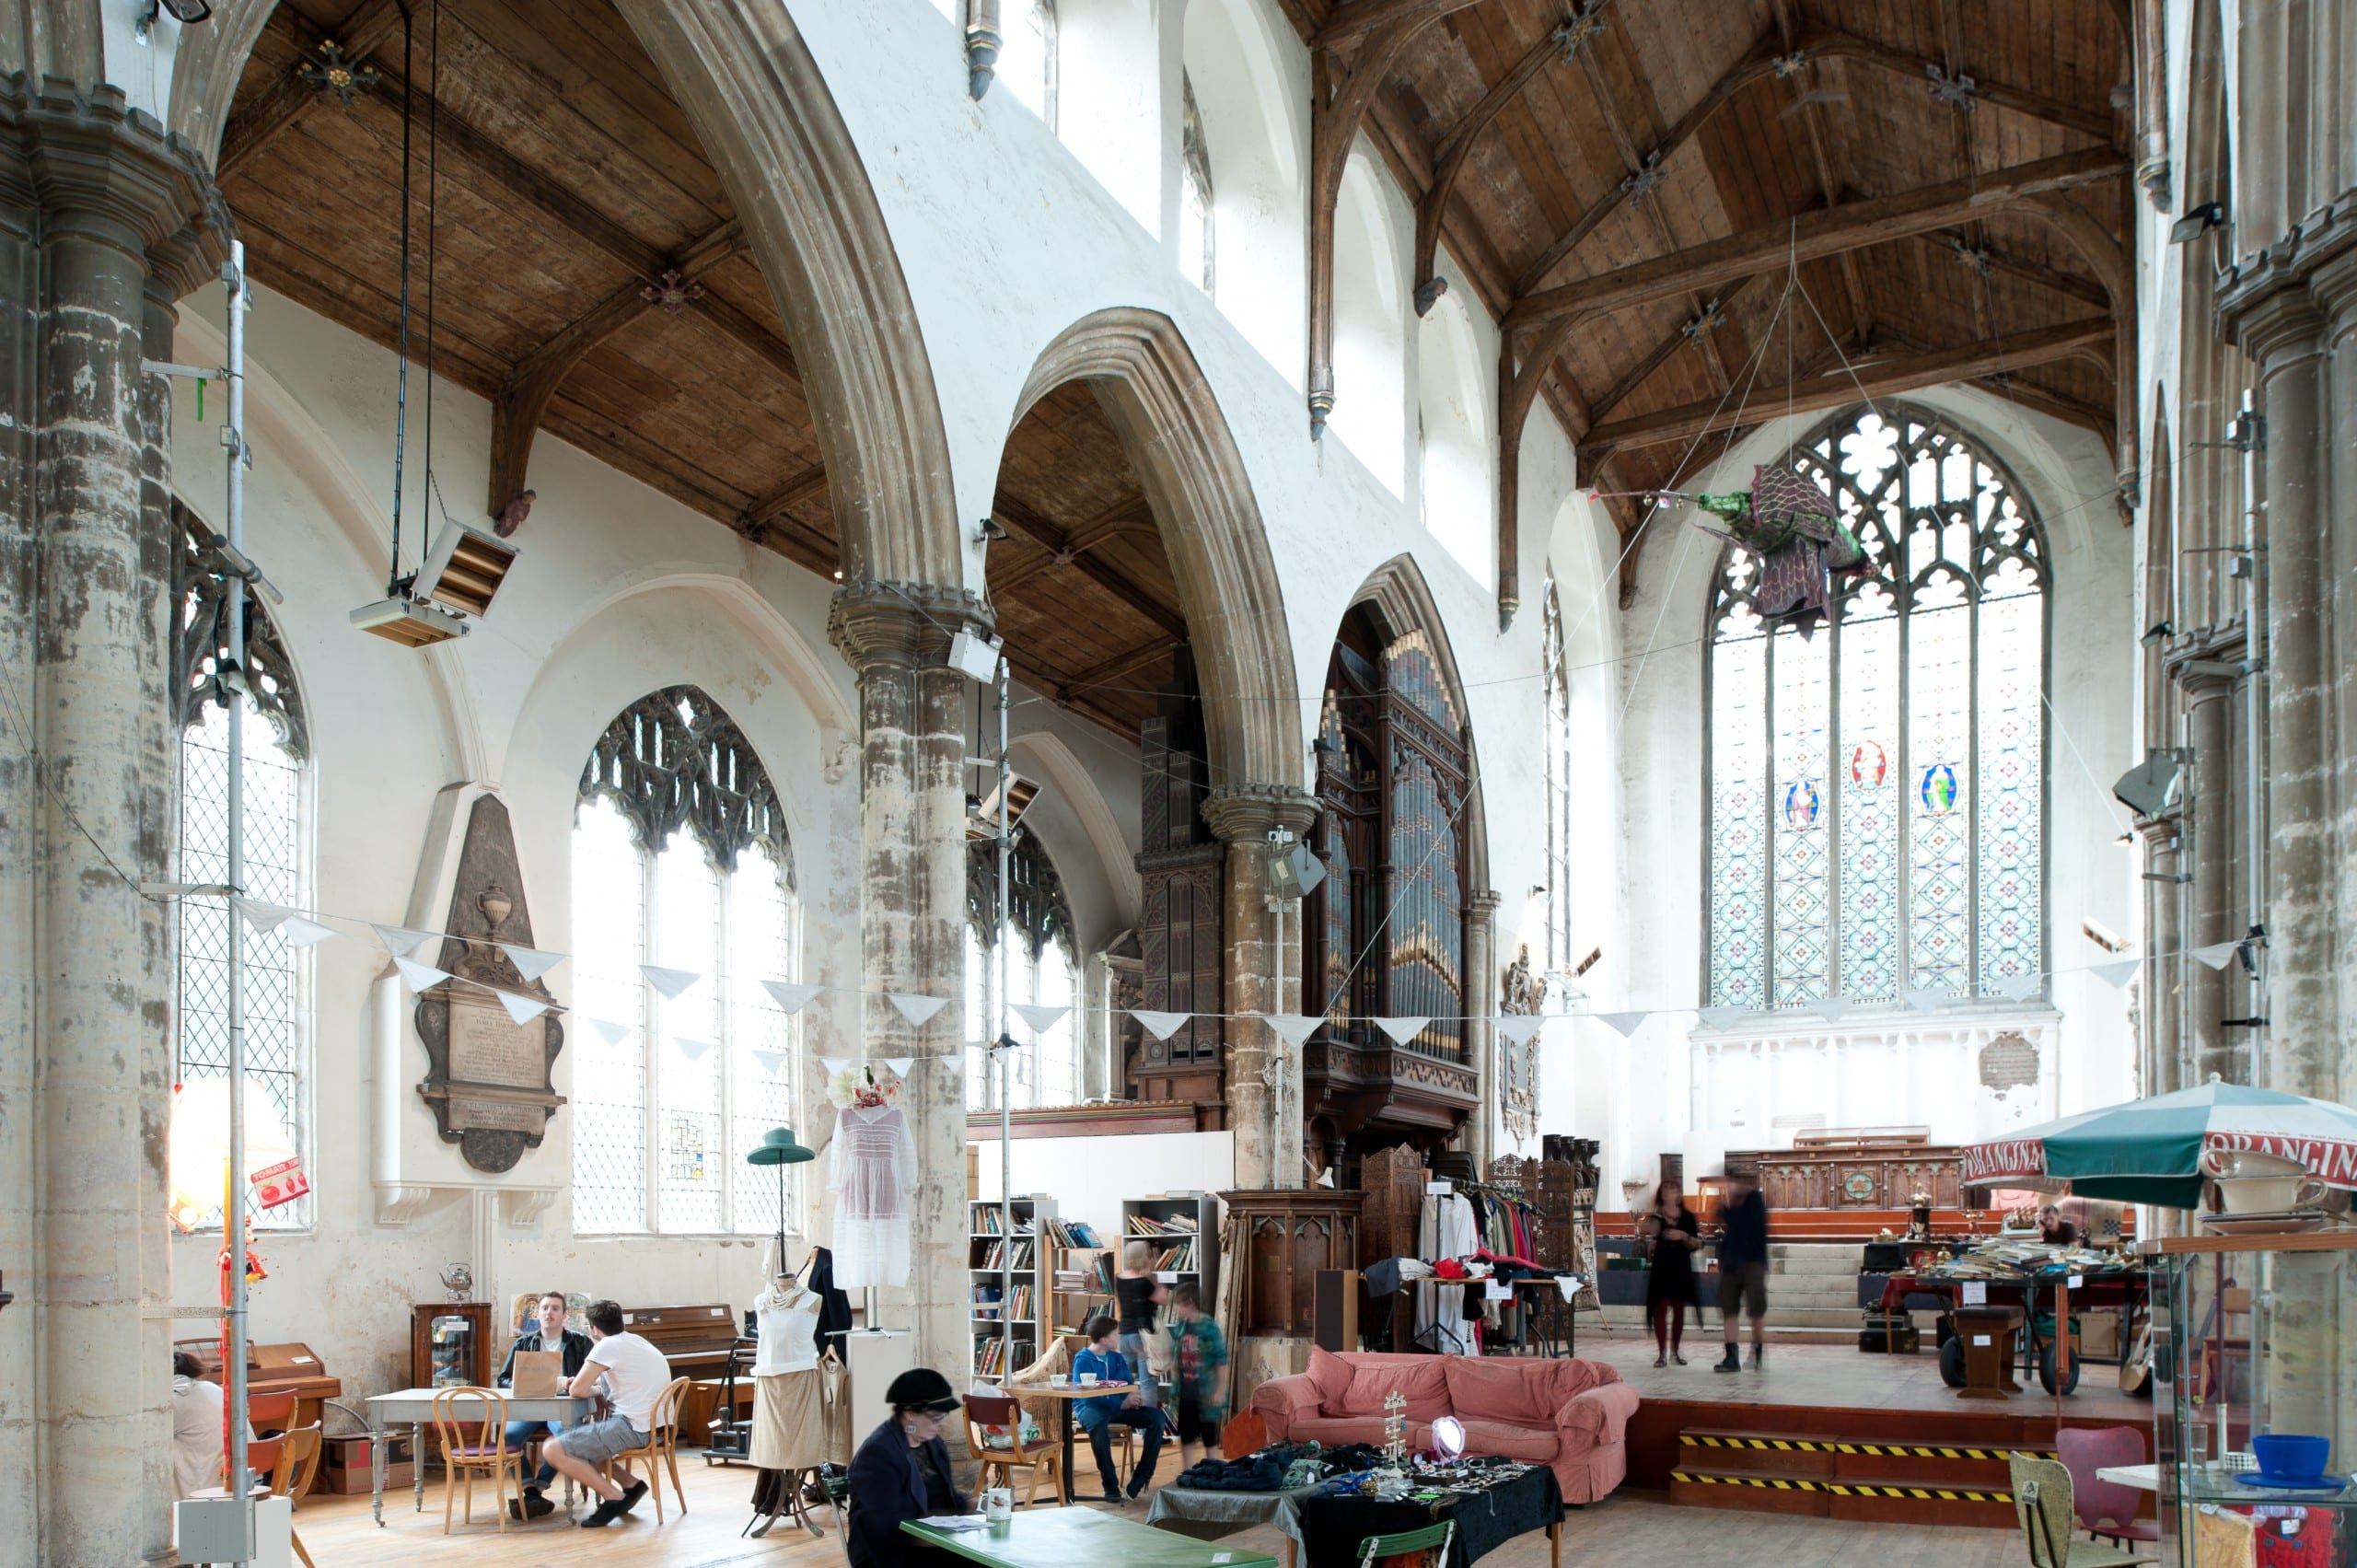 Fig. 1: Interior of the former parish church of St. Gregory Pottergate, Norwich, England, late 14th century, view looking northeast (author's photo).